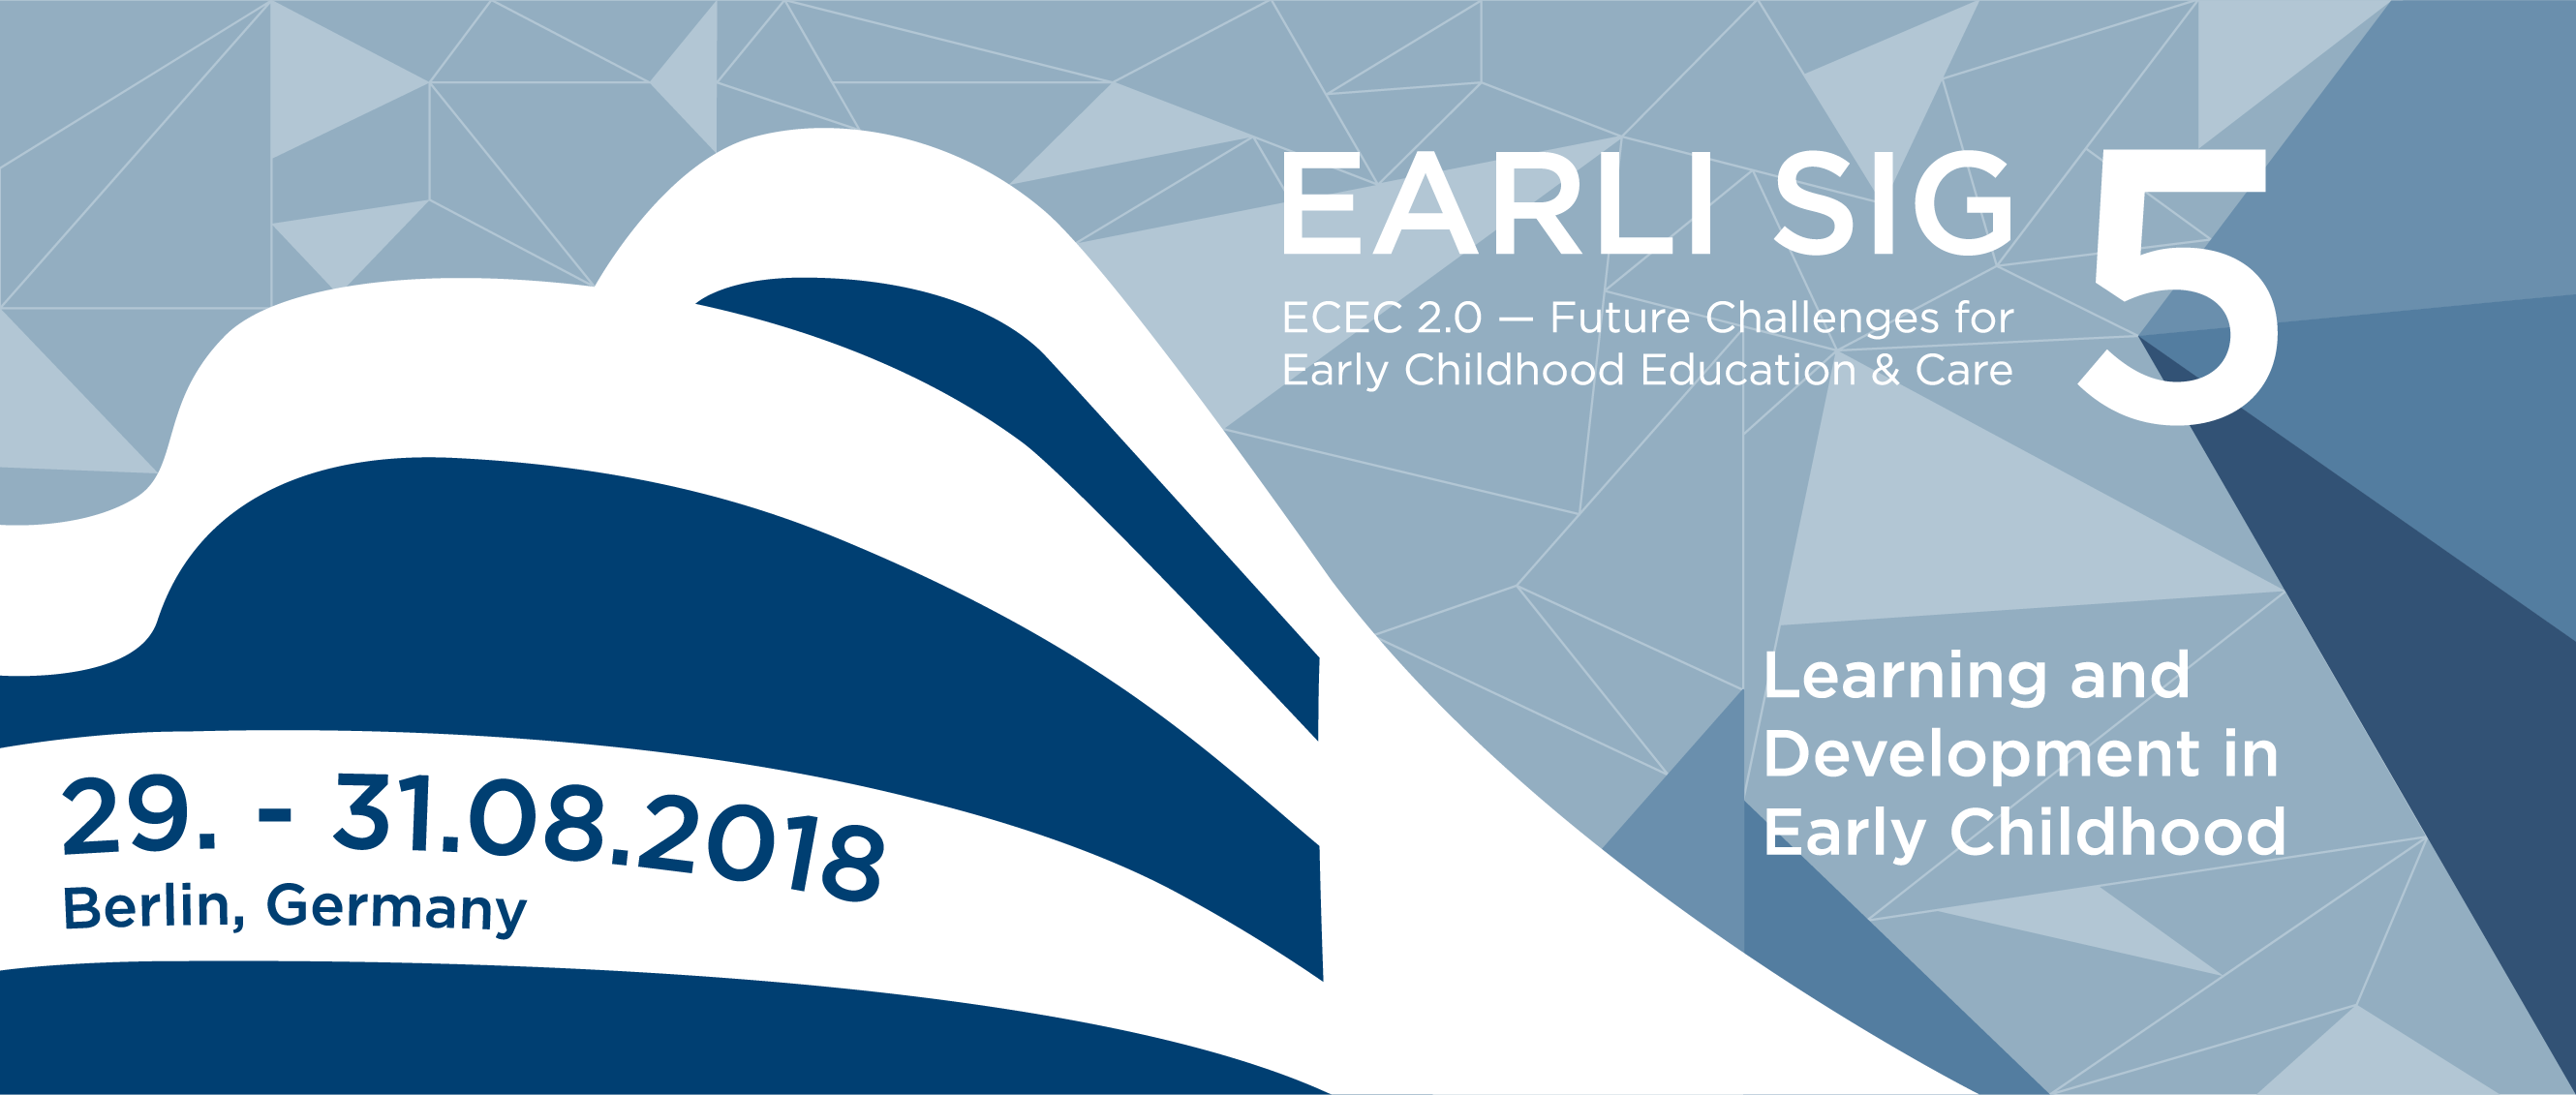 EARLI SIG 5 Conference 2018 Learning And Development In Early Childhood